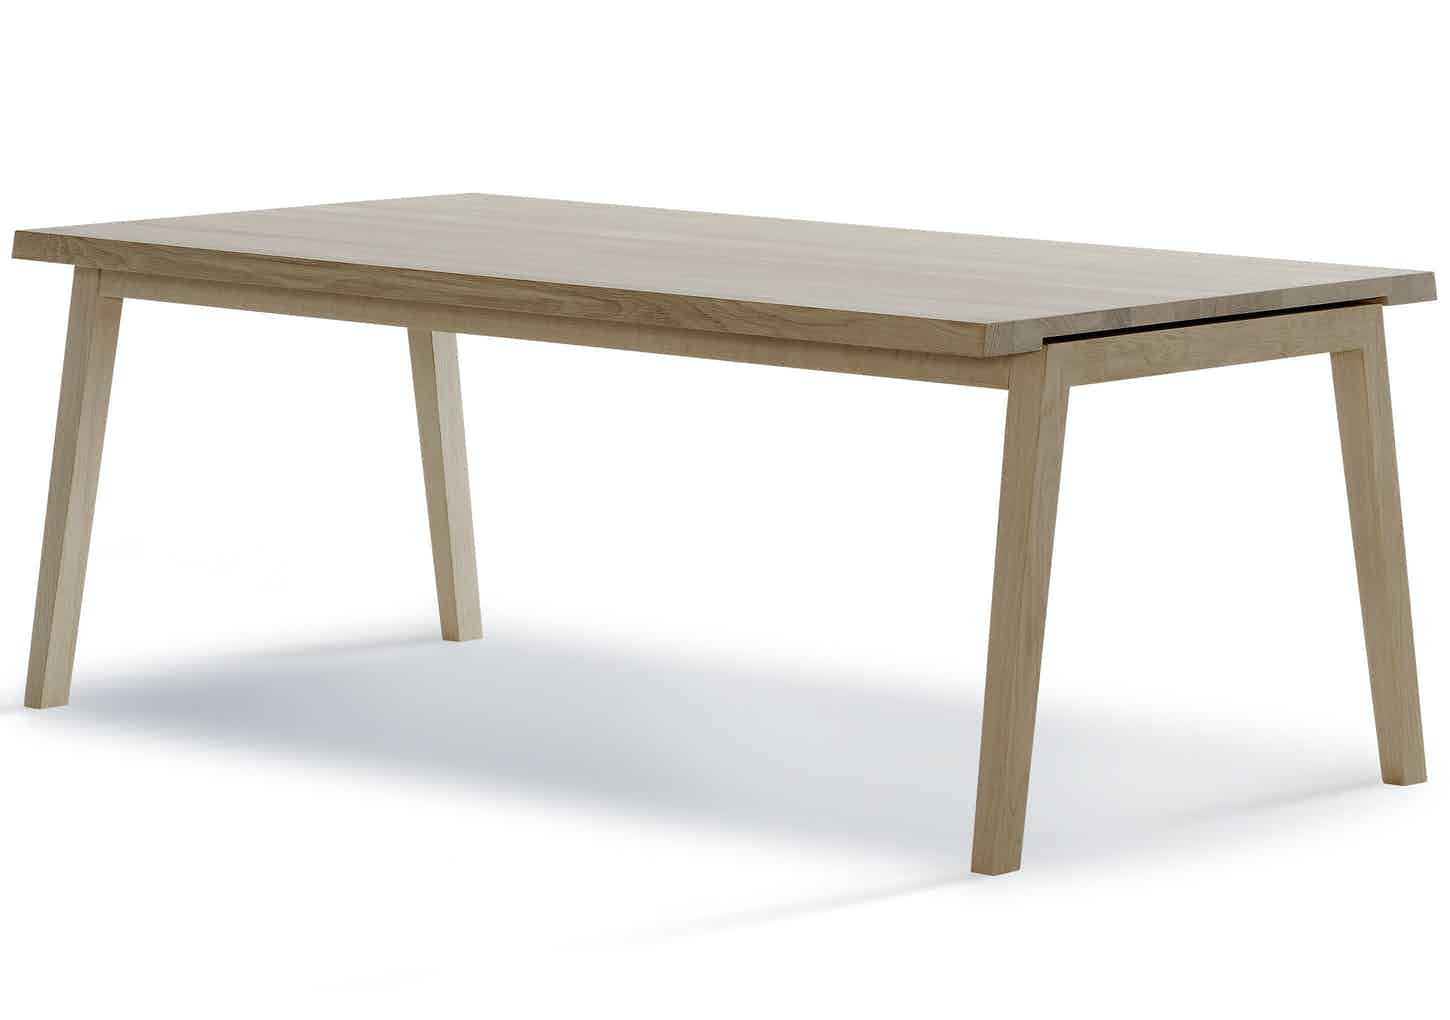 Carl-hansen-son-side-sh900-haute-living